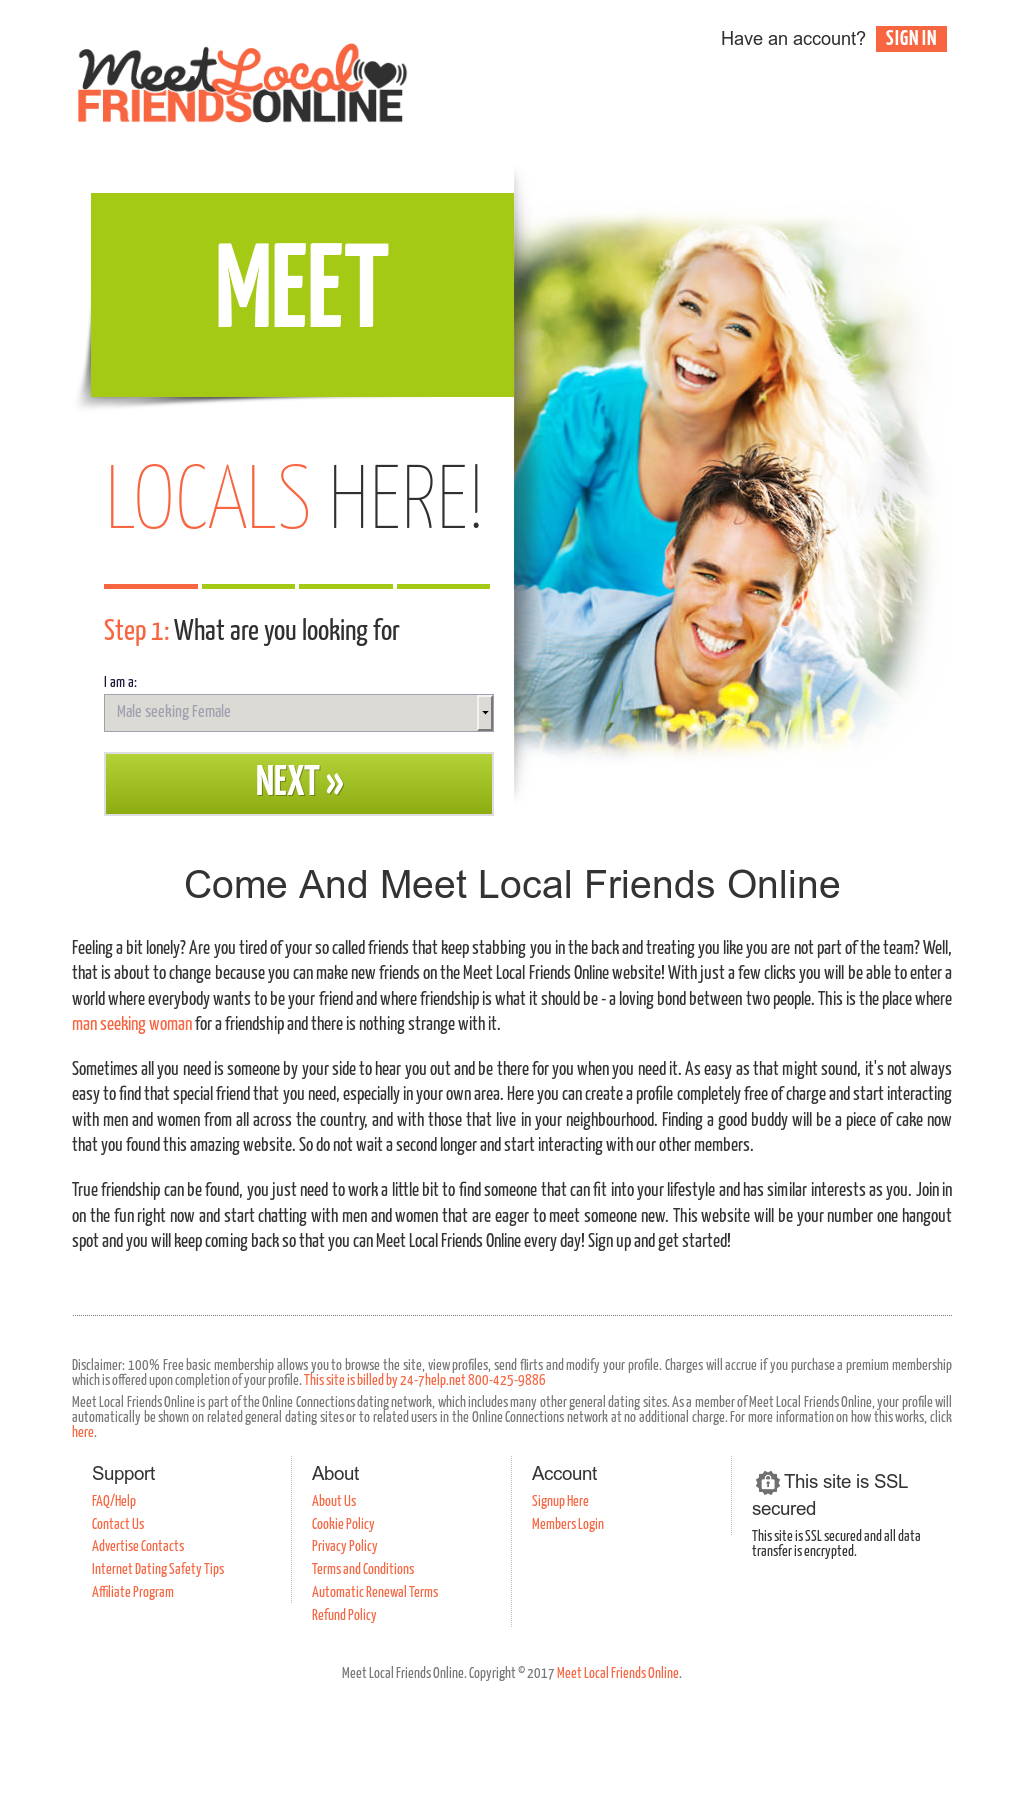 Meet local friends online